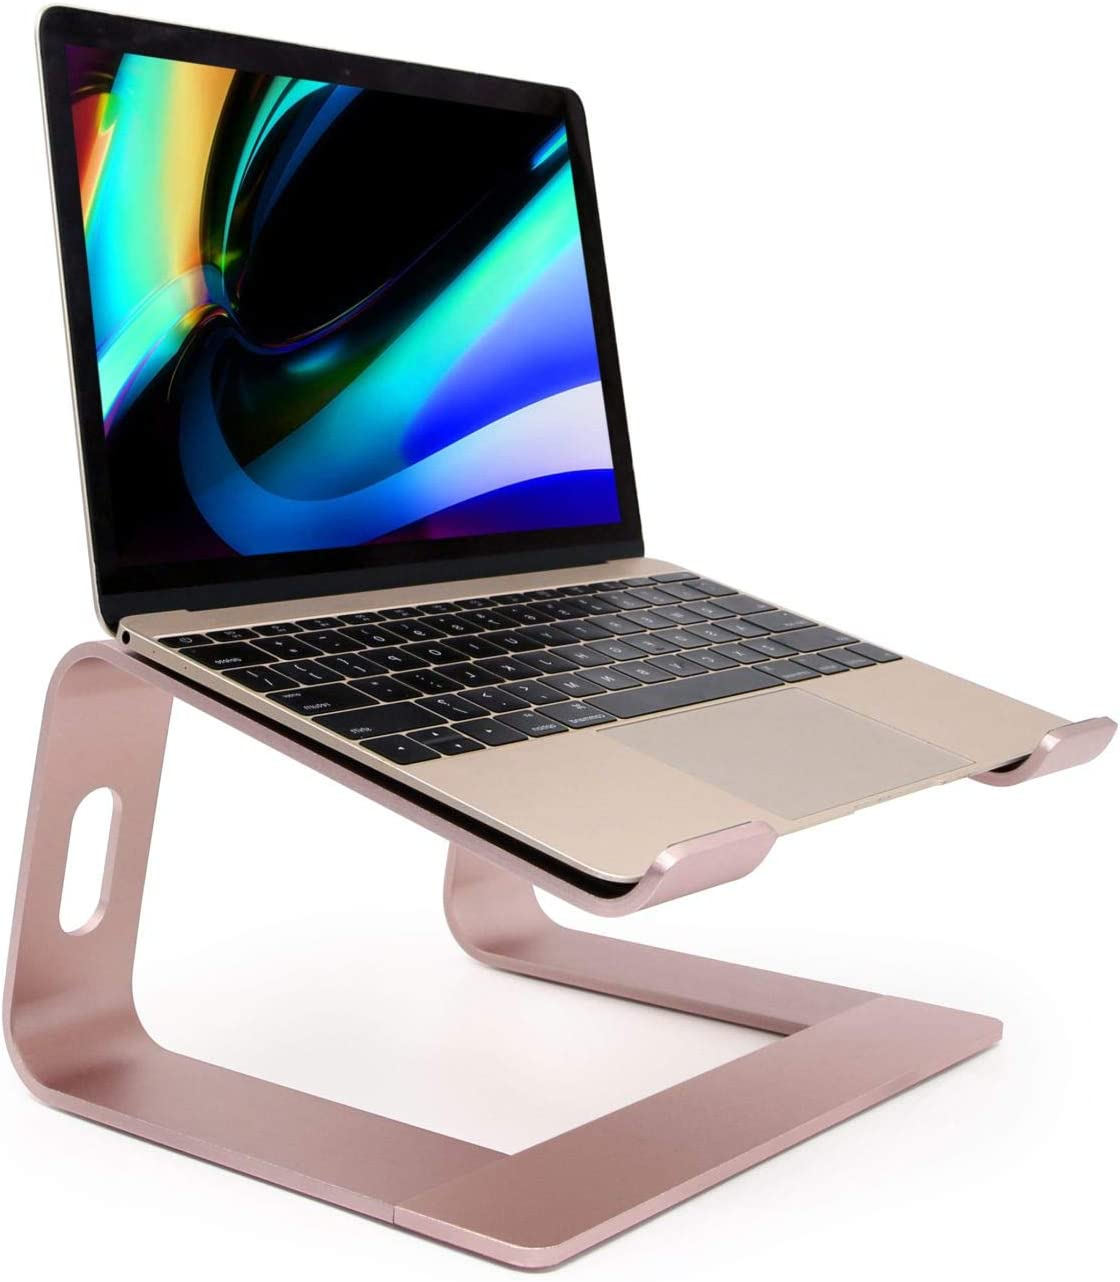 Laptop Stand, Ergonomic Aluminum Laptop Mount Computer Stand, Detachable Laptop Riser,Notebook Holder Stand Compatible with MacBook Pro/Air HP Lenovo Samsung Huawei ,All 10-17.3